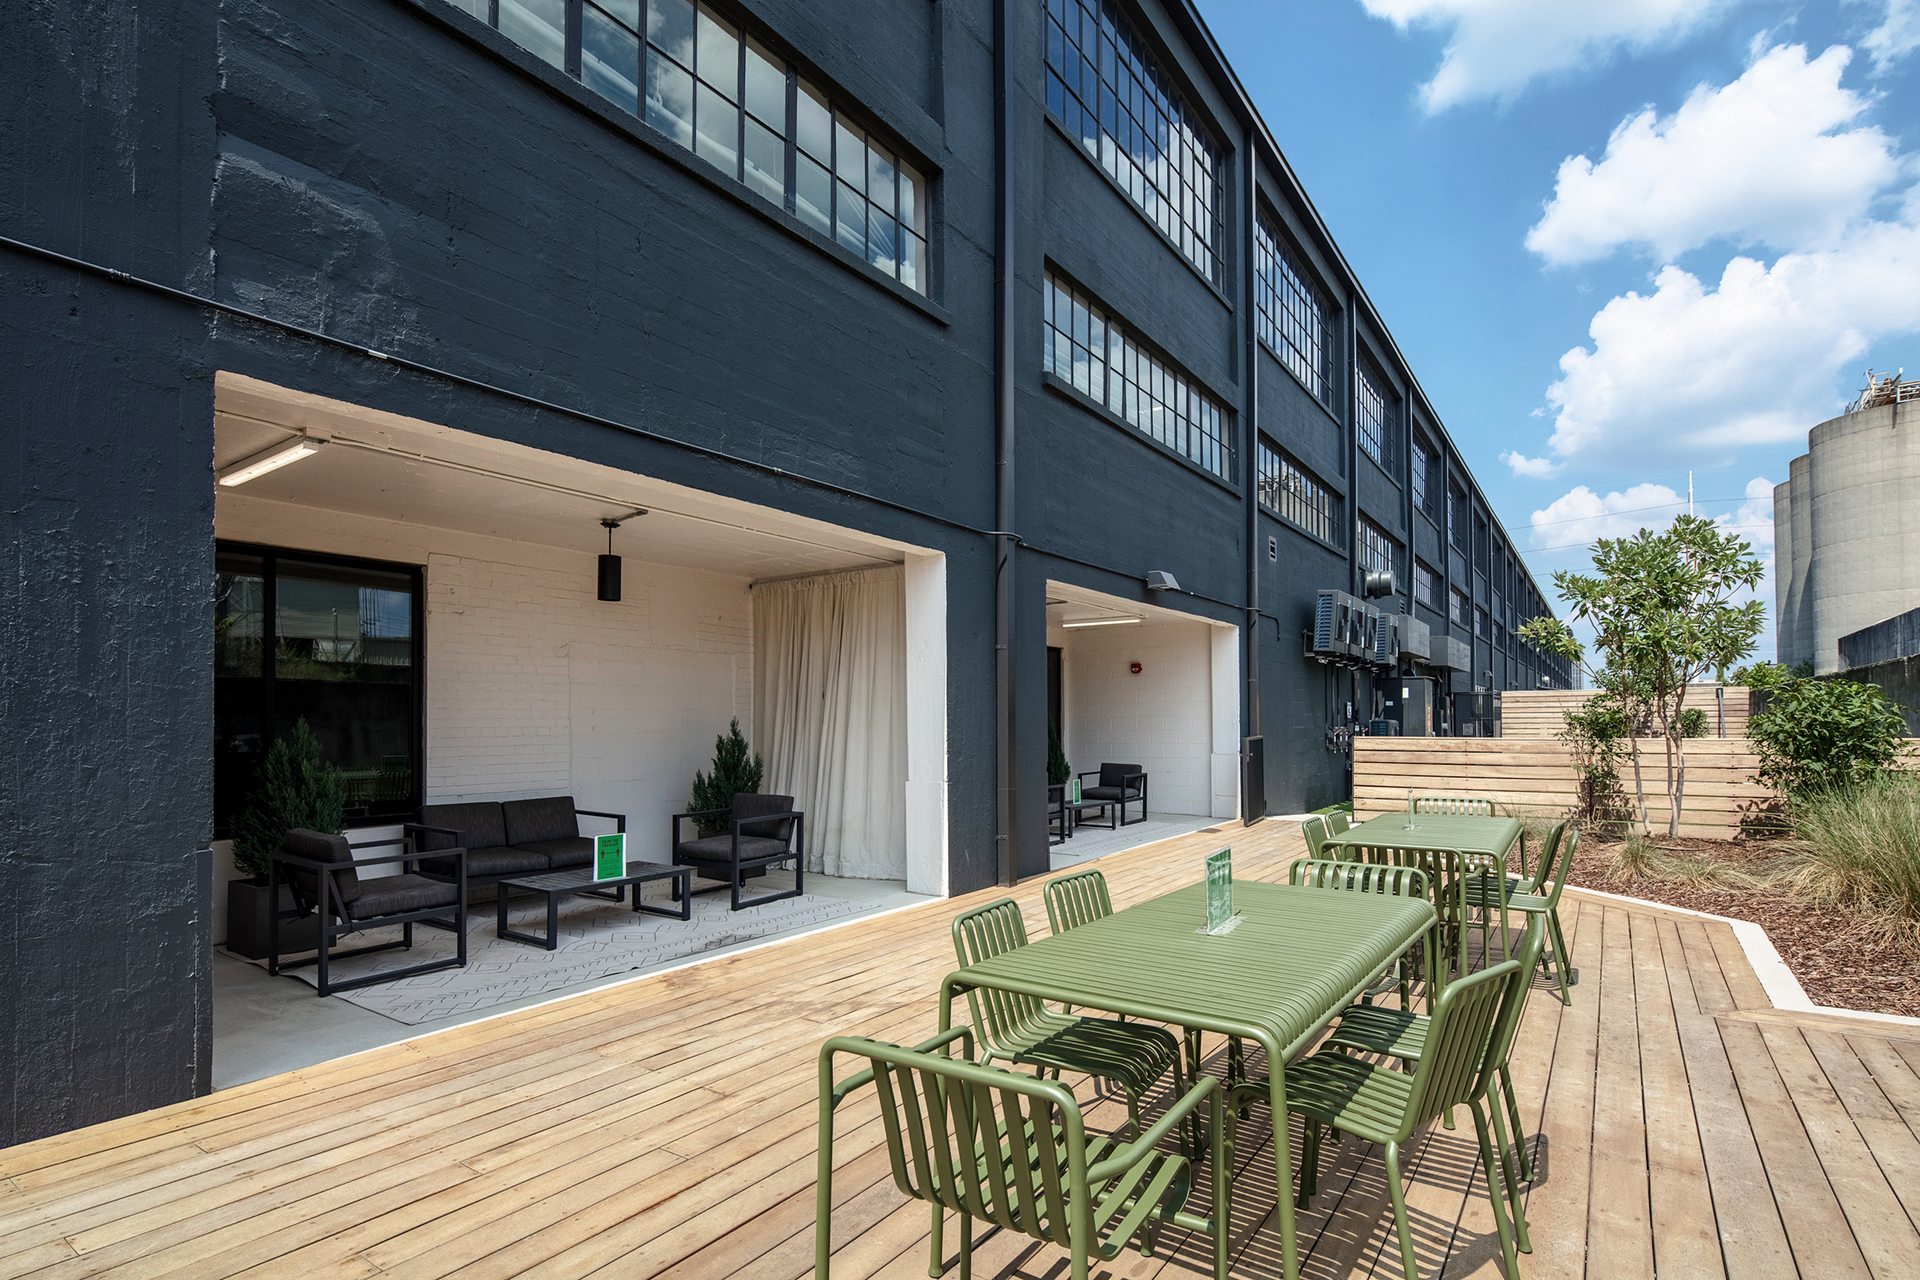 Outdoor seating area with tables and chairs at The Denham Building loft apartments for rent in Birmingham, AL